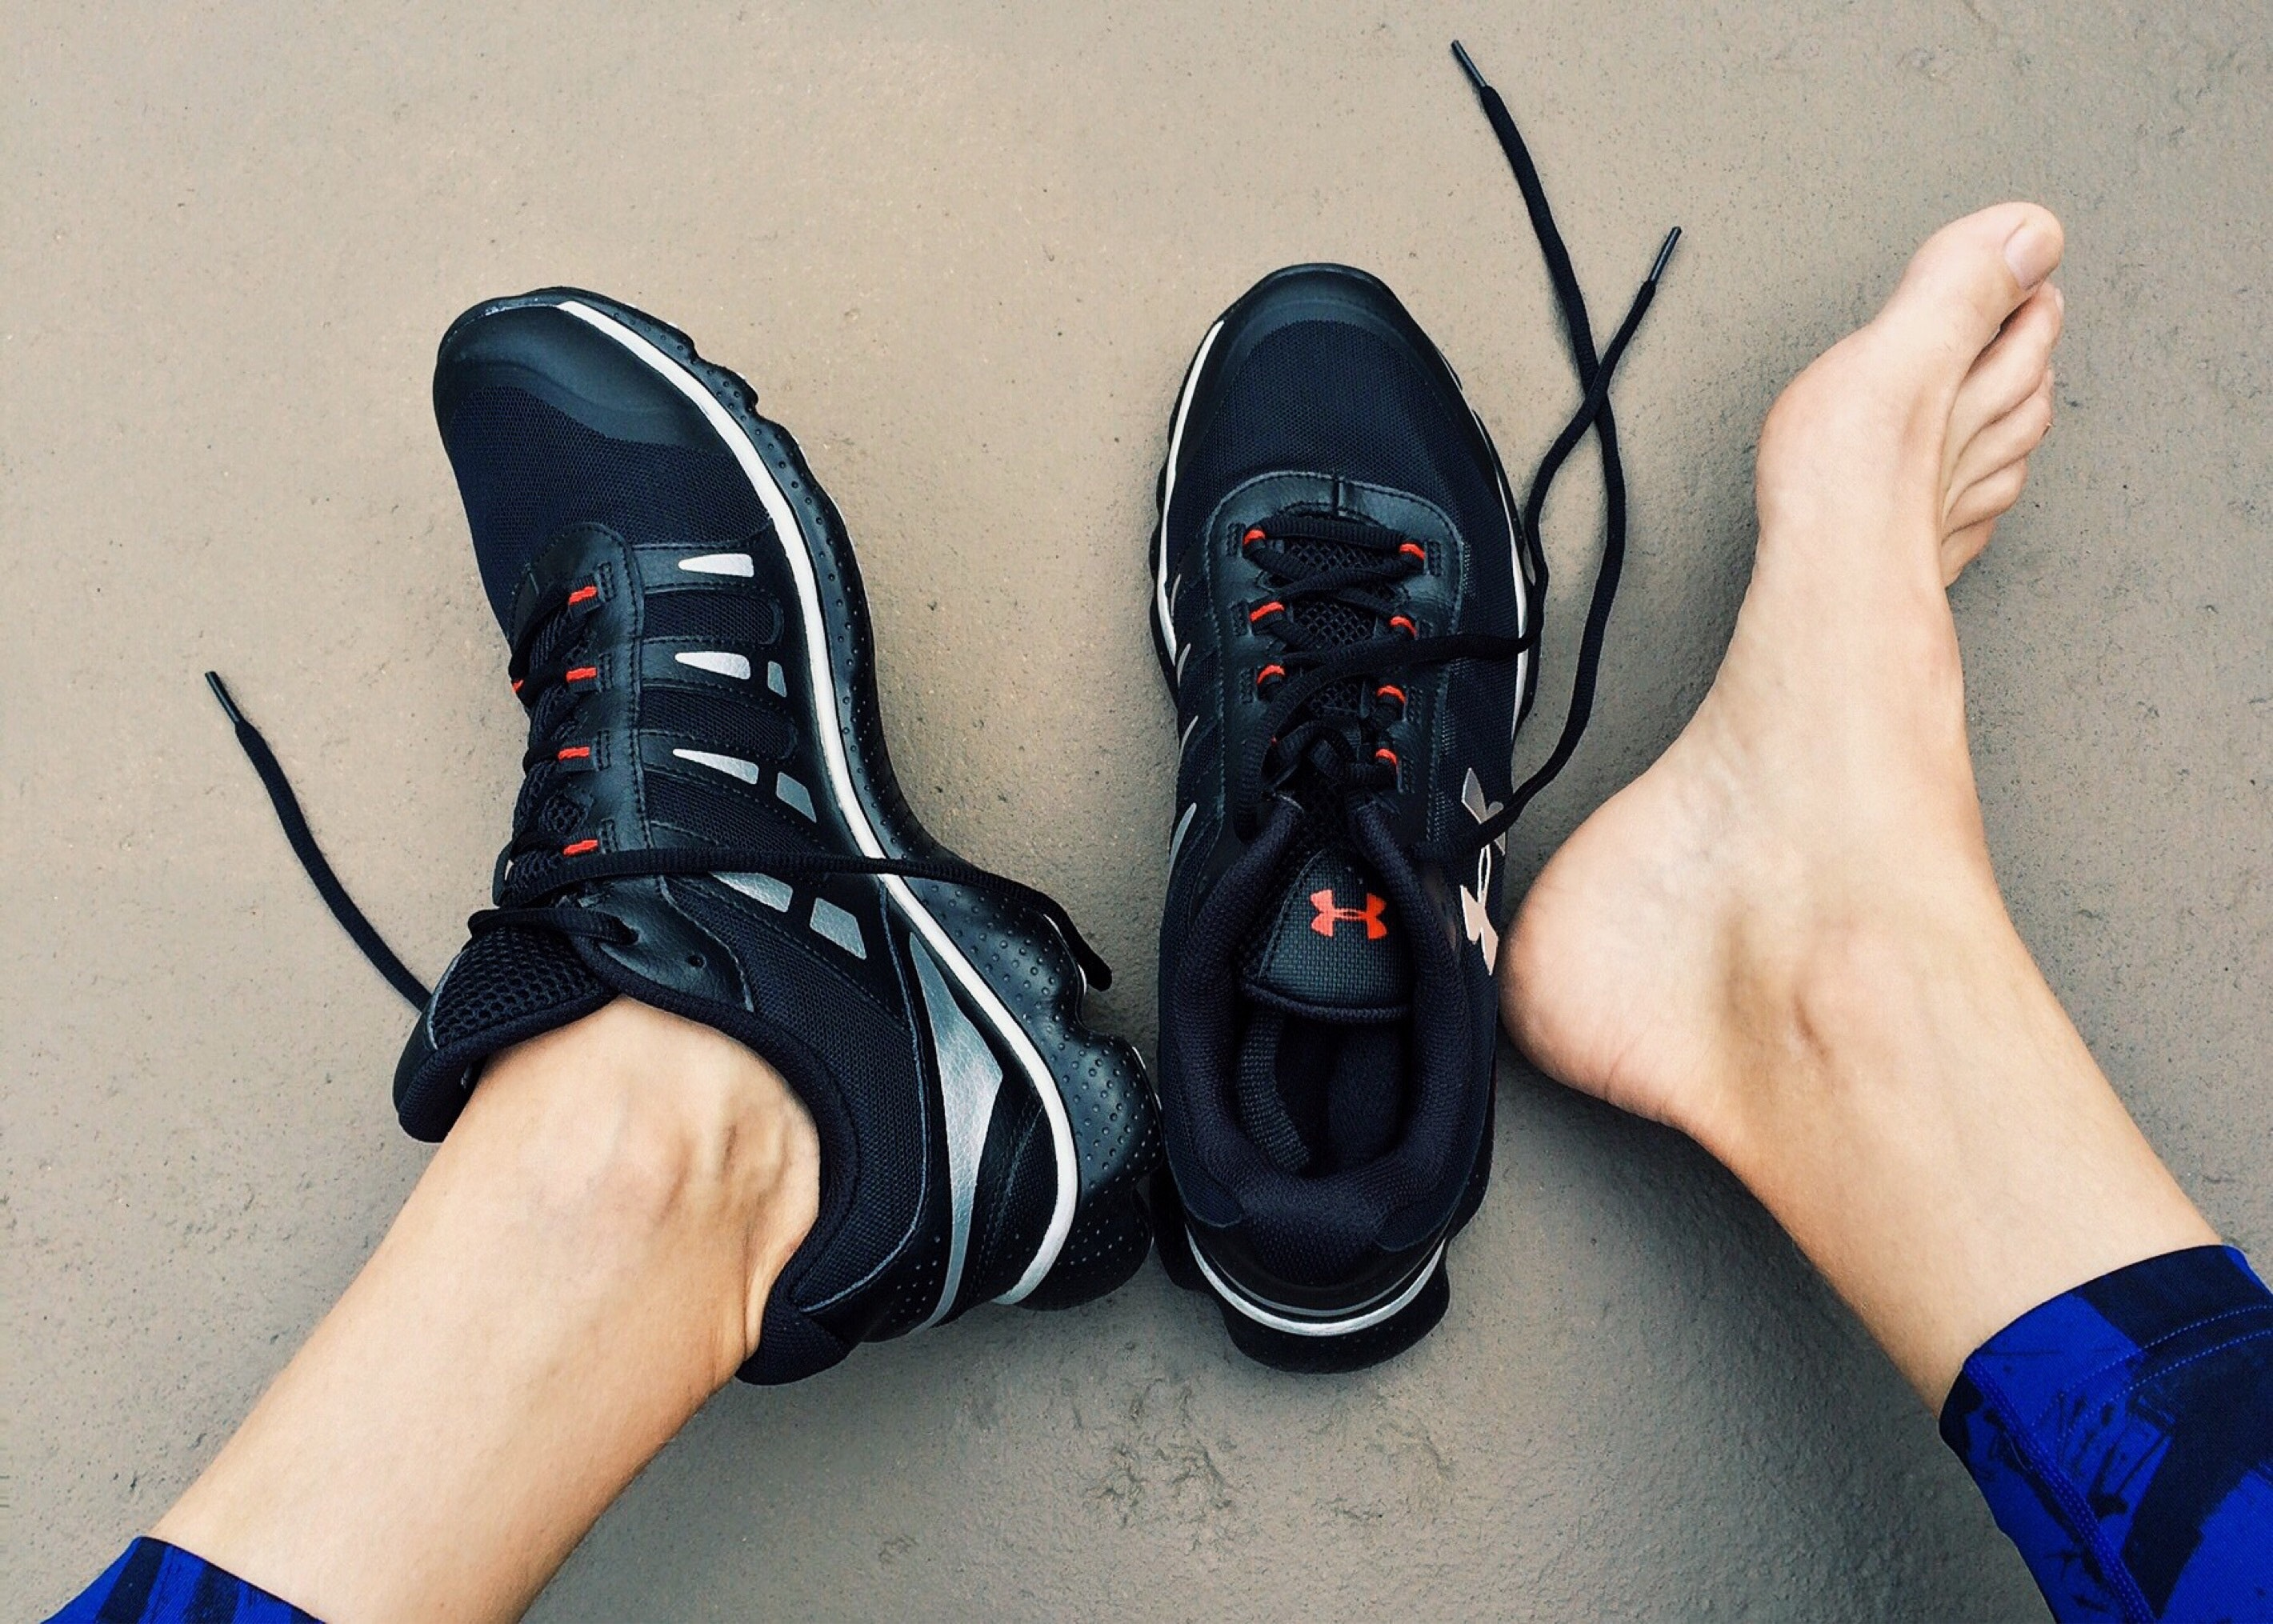 Do you have itchy feet? See a podiatrist | Sutherland Podiatry Centre